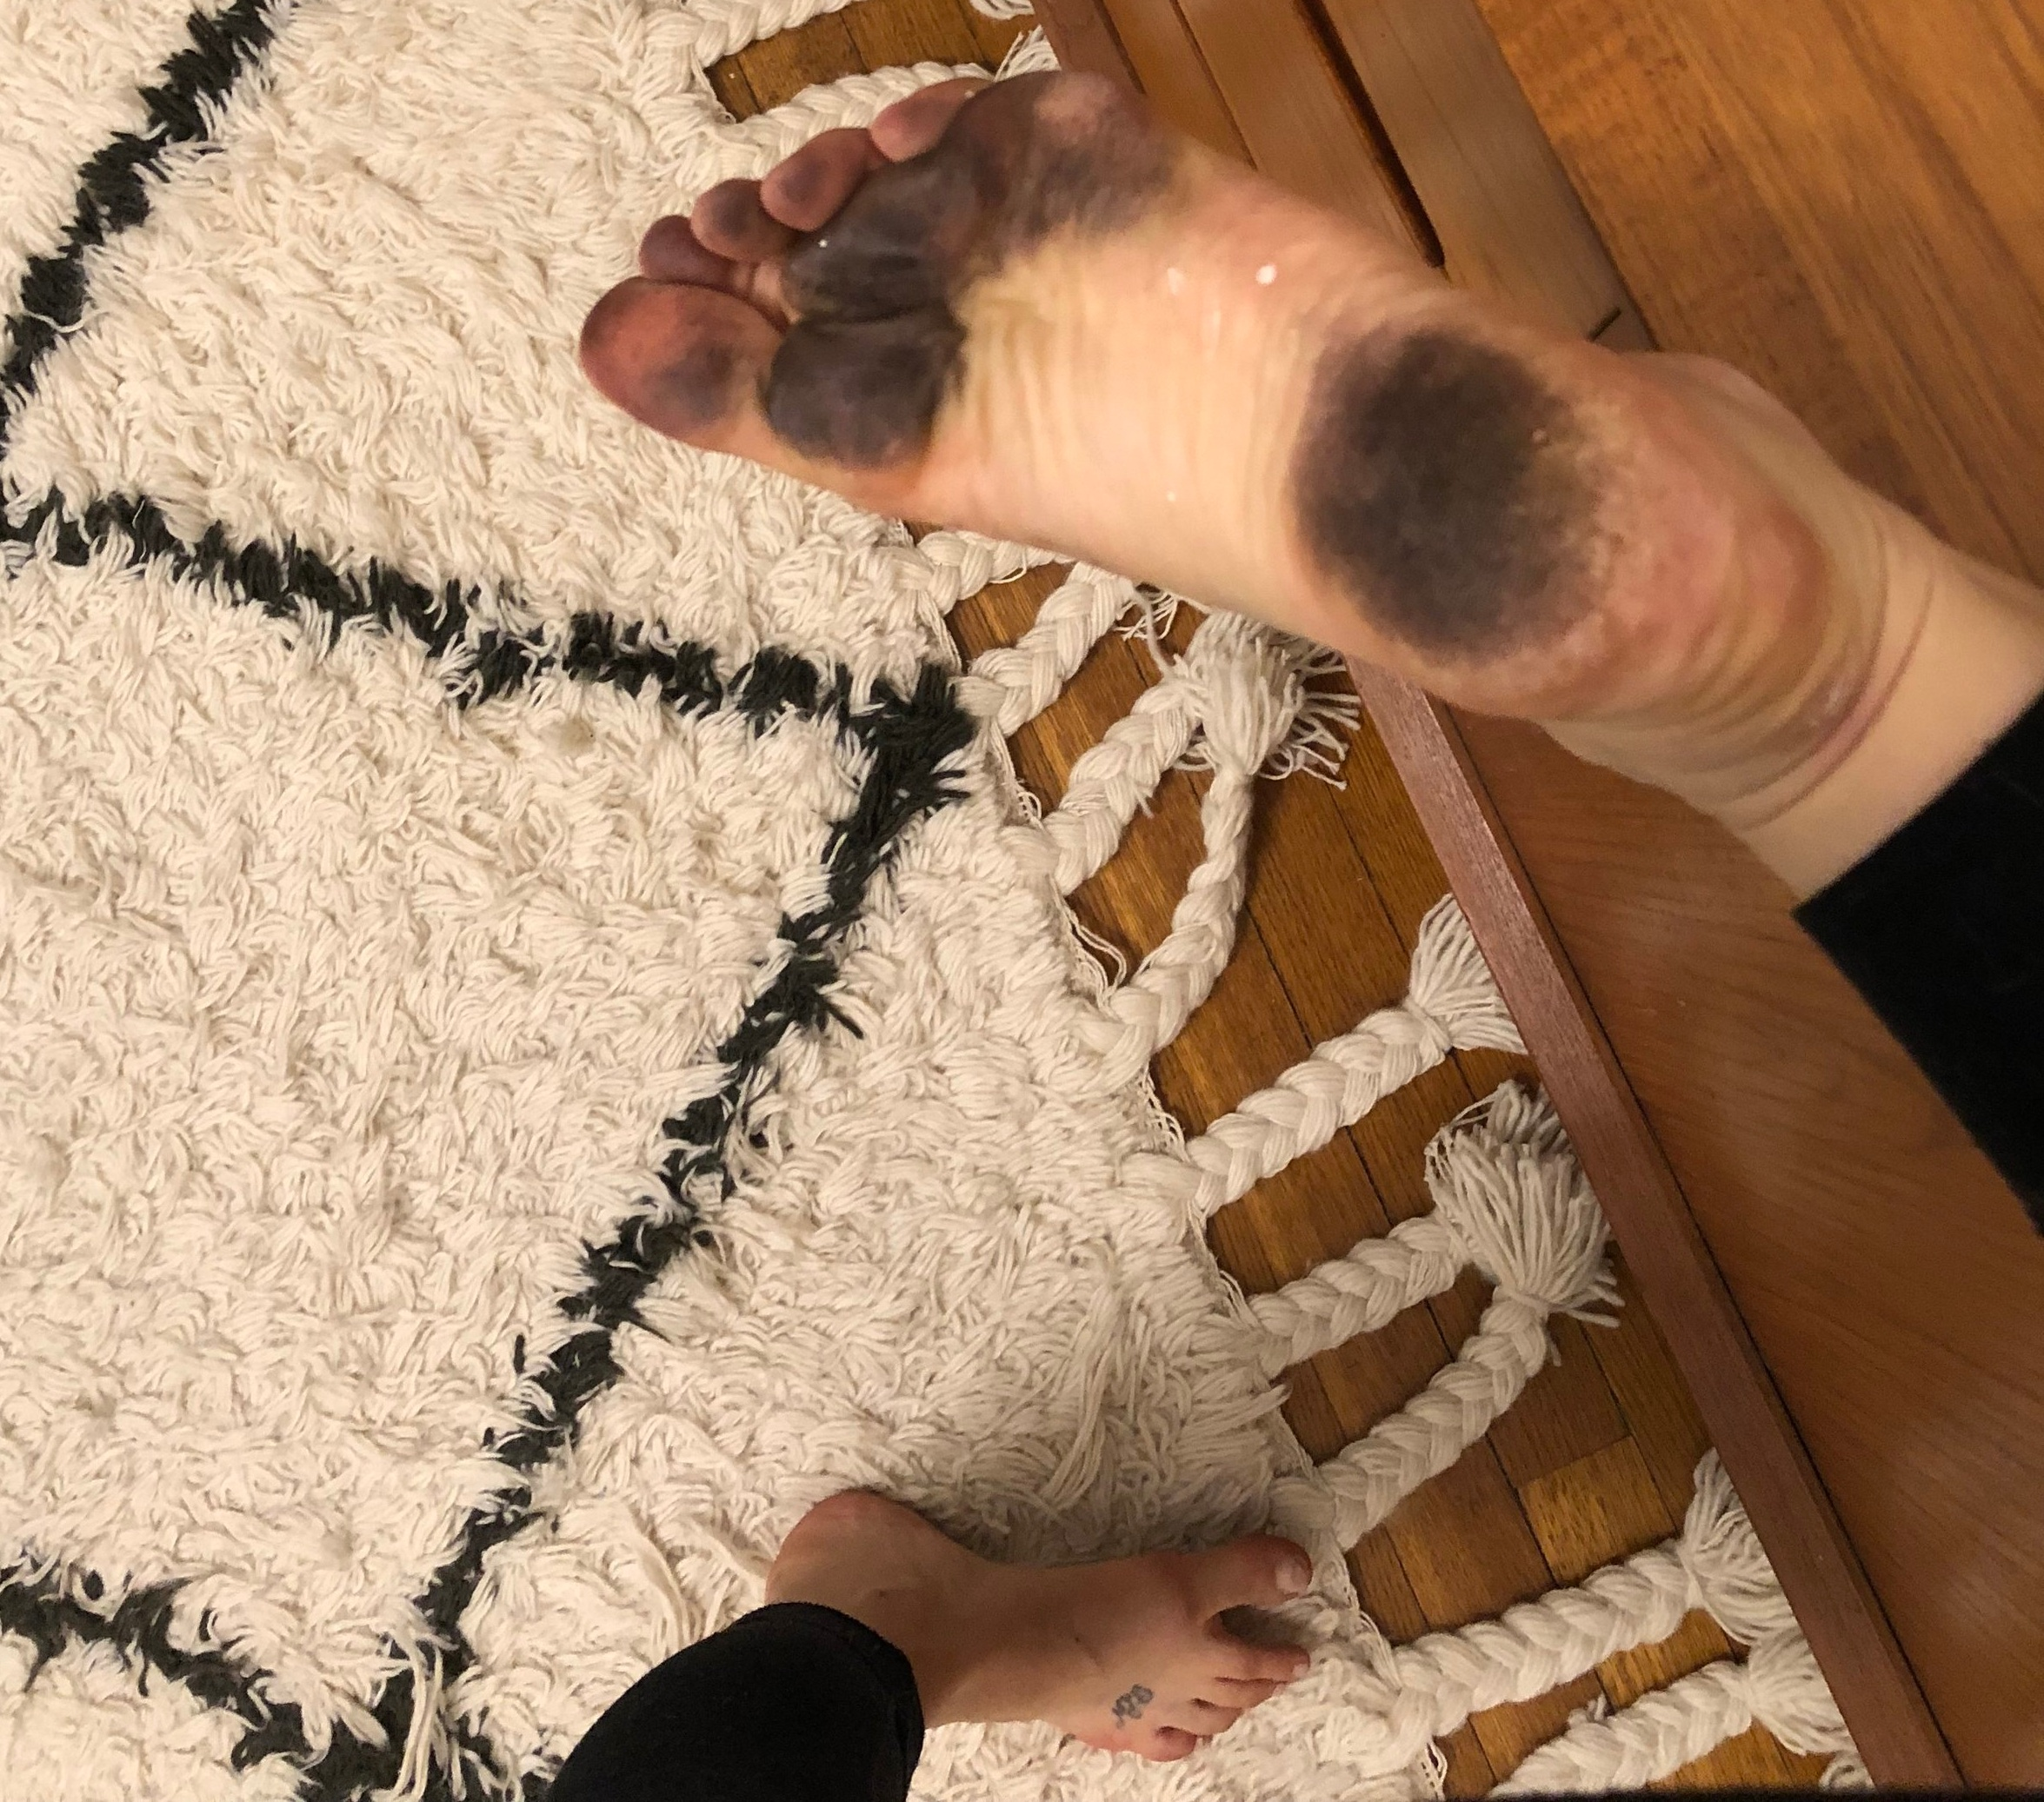 This is what my feet looked like after painting, even though the floor looked clean! That super fine paint mist can be sneaky!